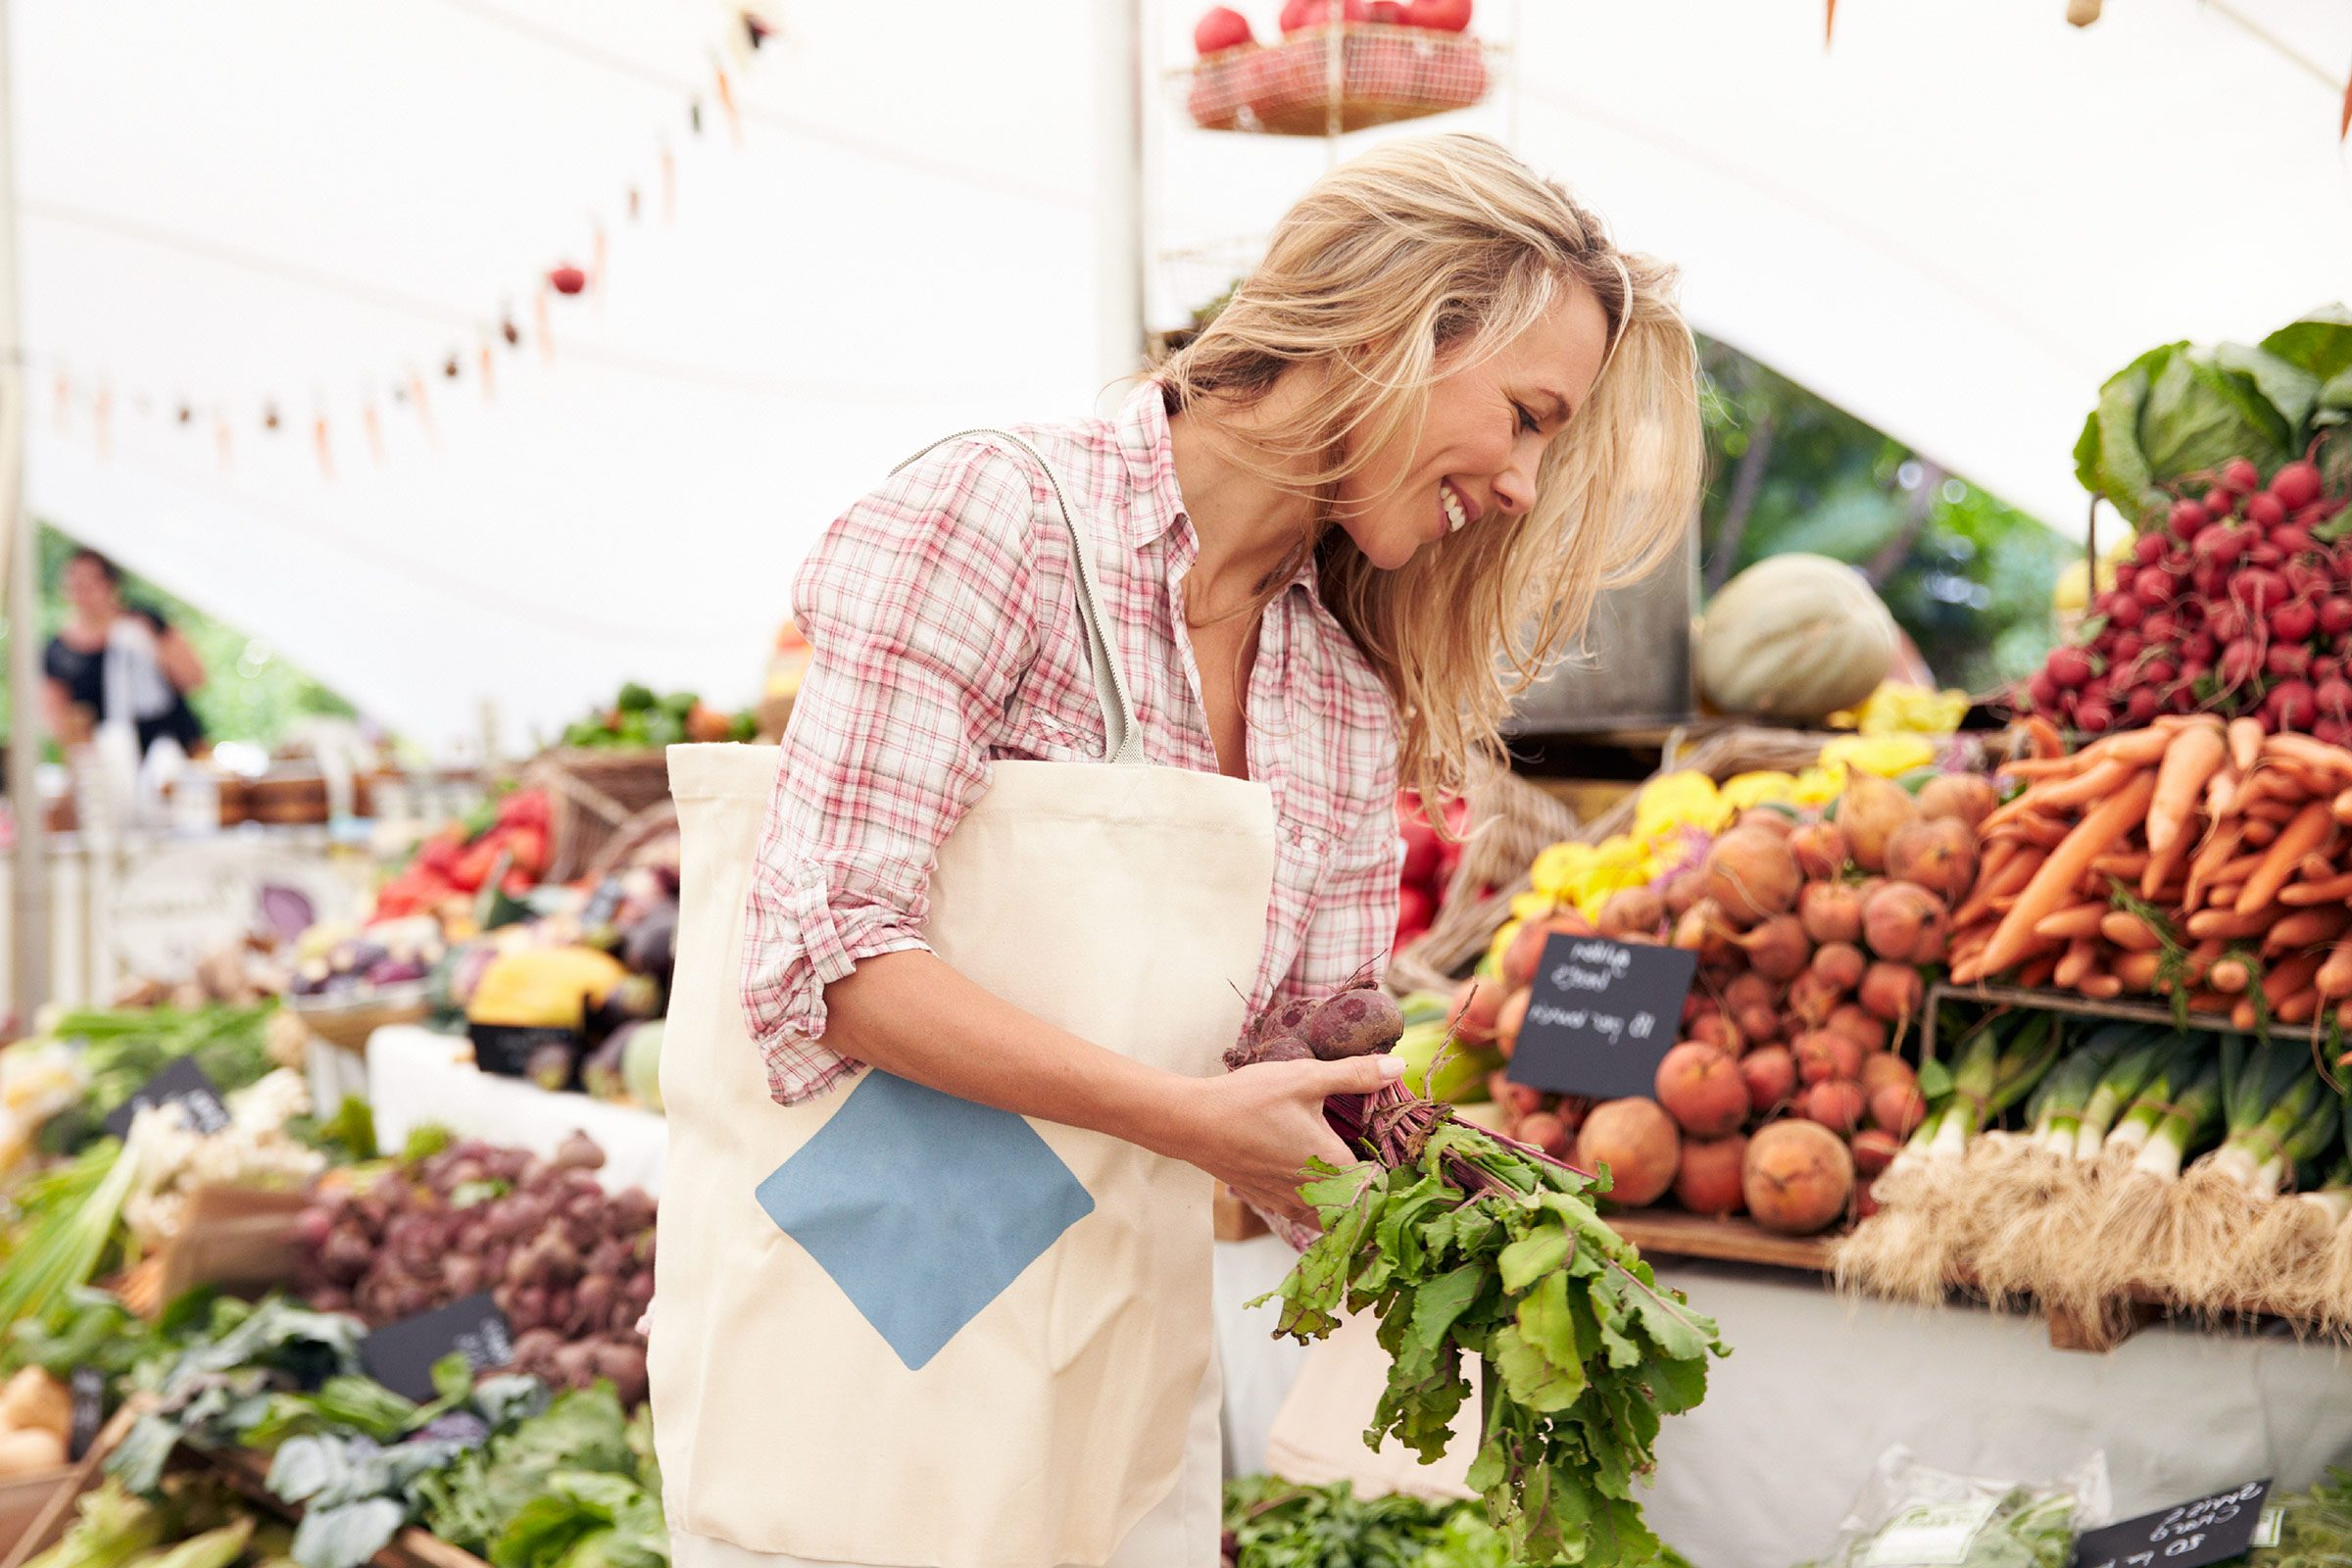 13+ Things You Didn't Know About Organic Food | Reader's ...